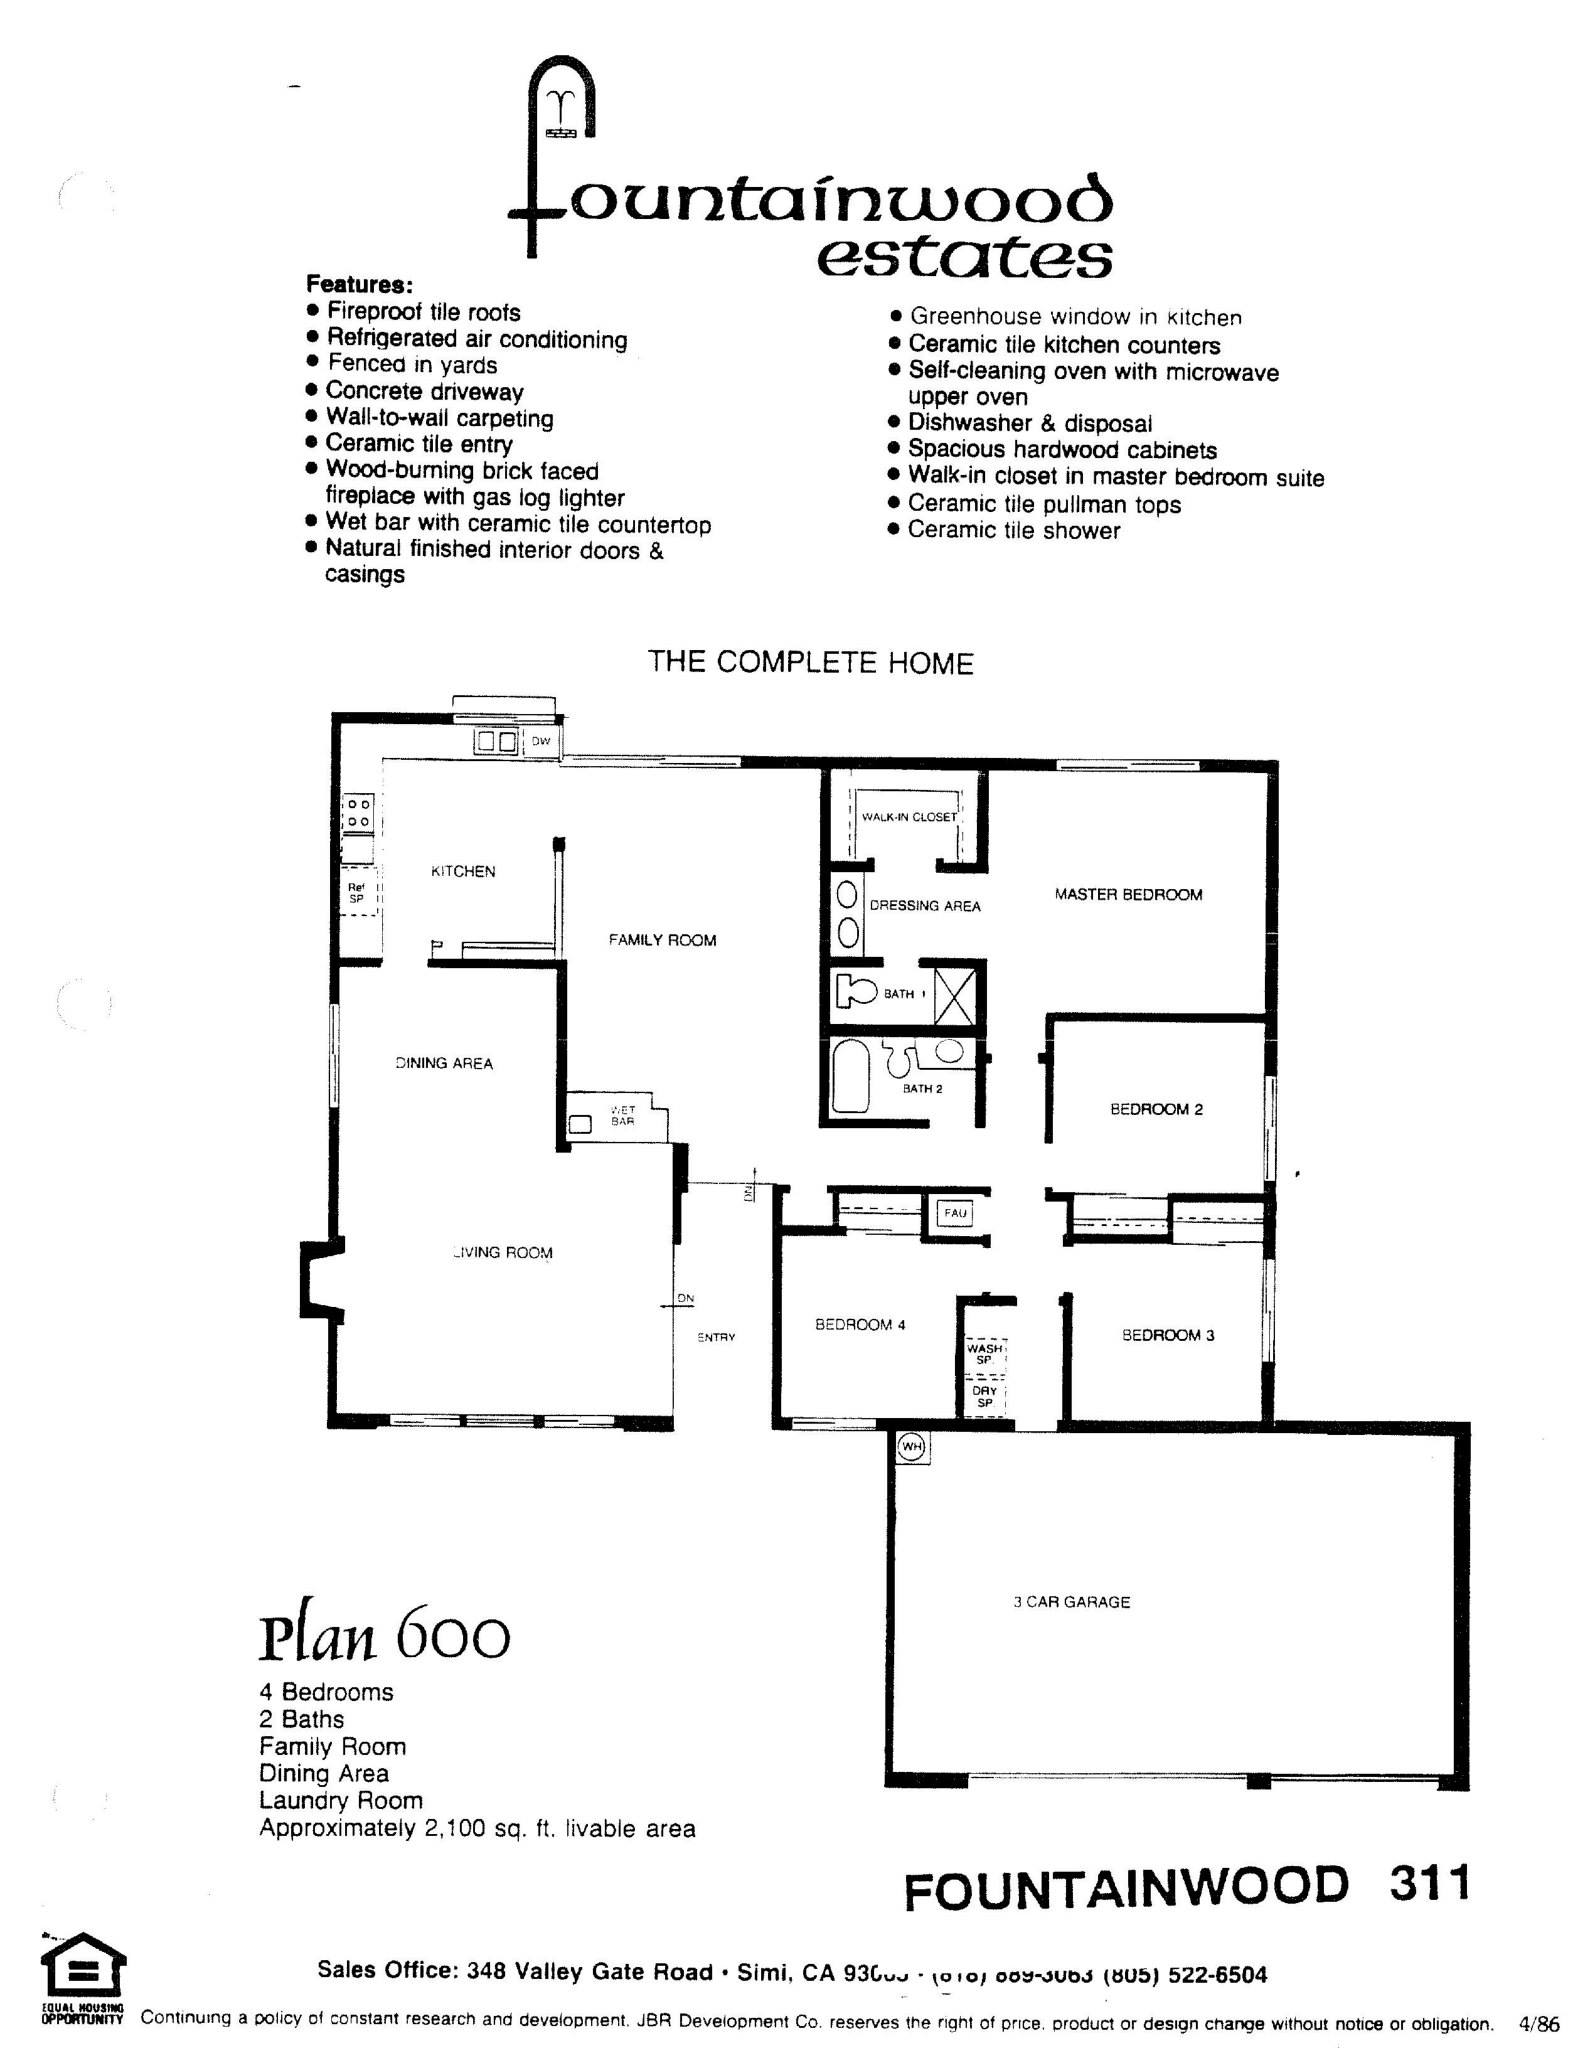 Fountainwood Estates - Plan 600